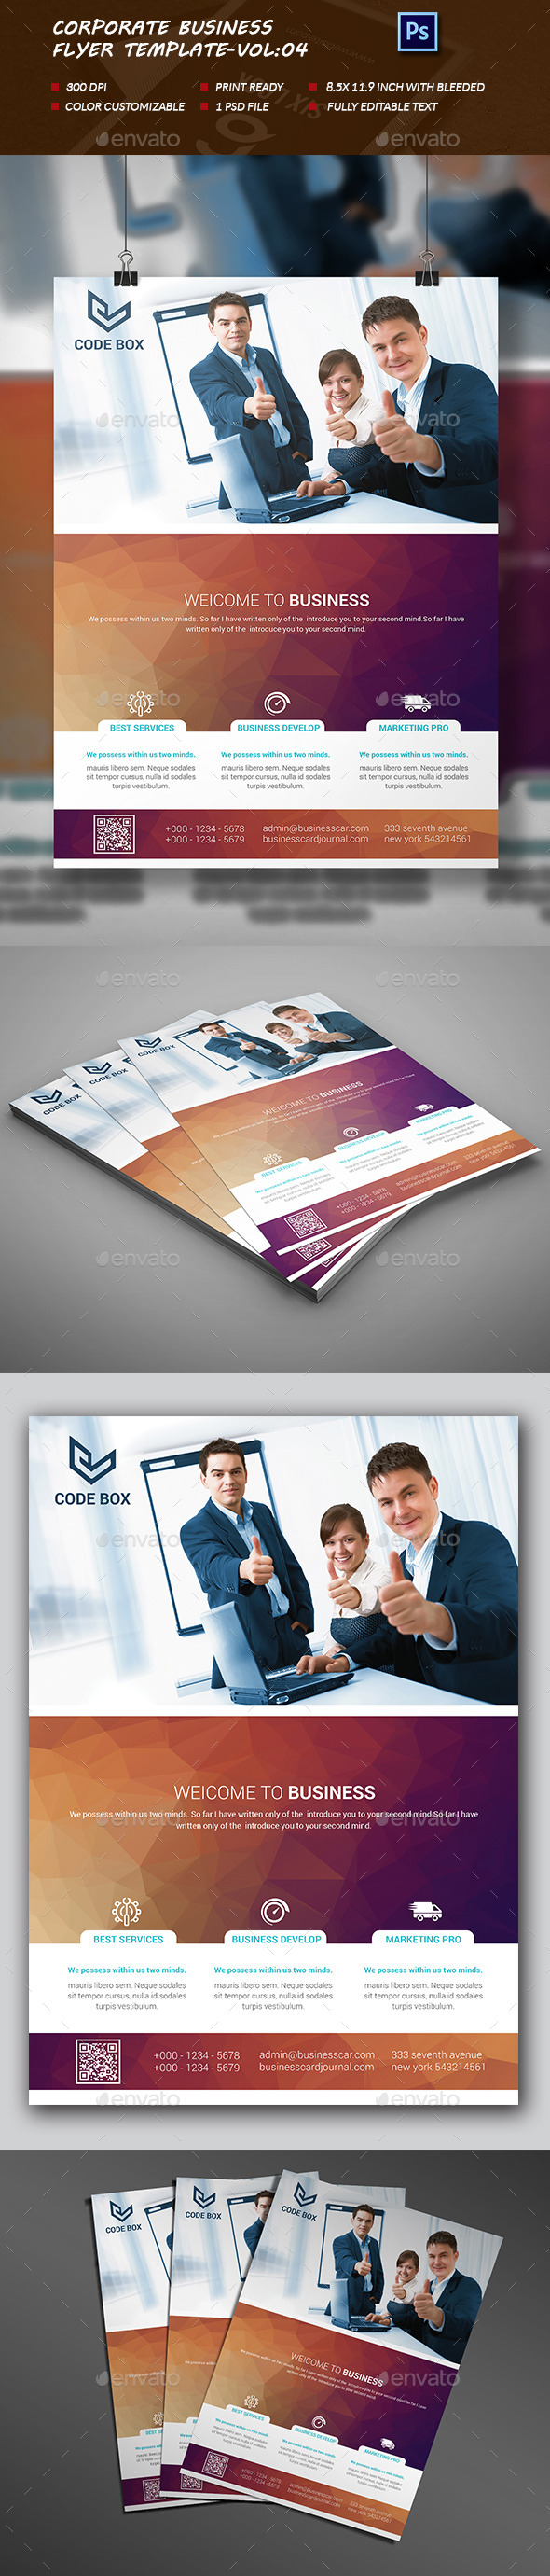 Corporate business Flyer Template vol:04 - Flyers Print Templates